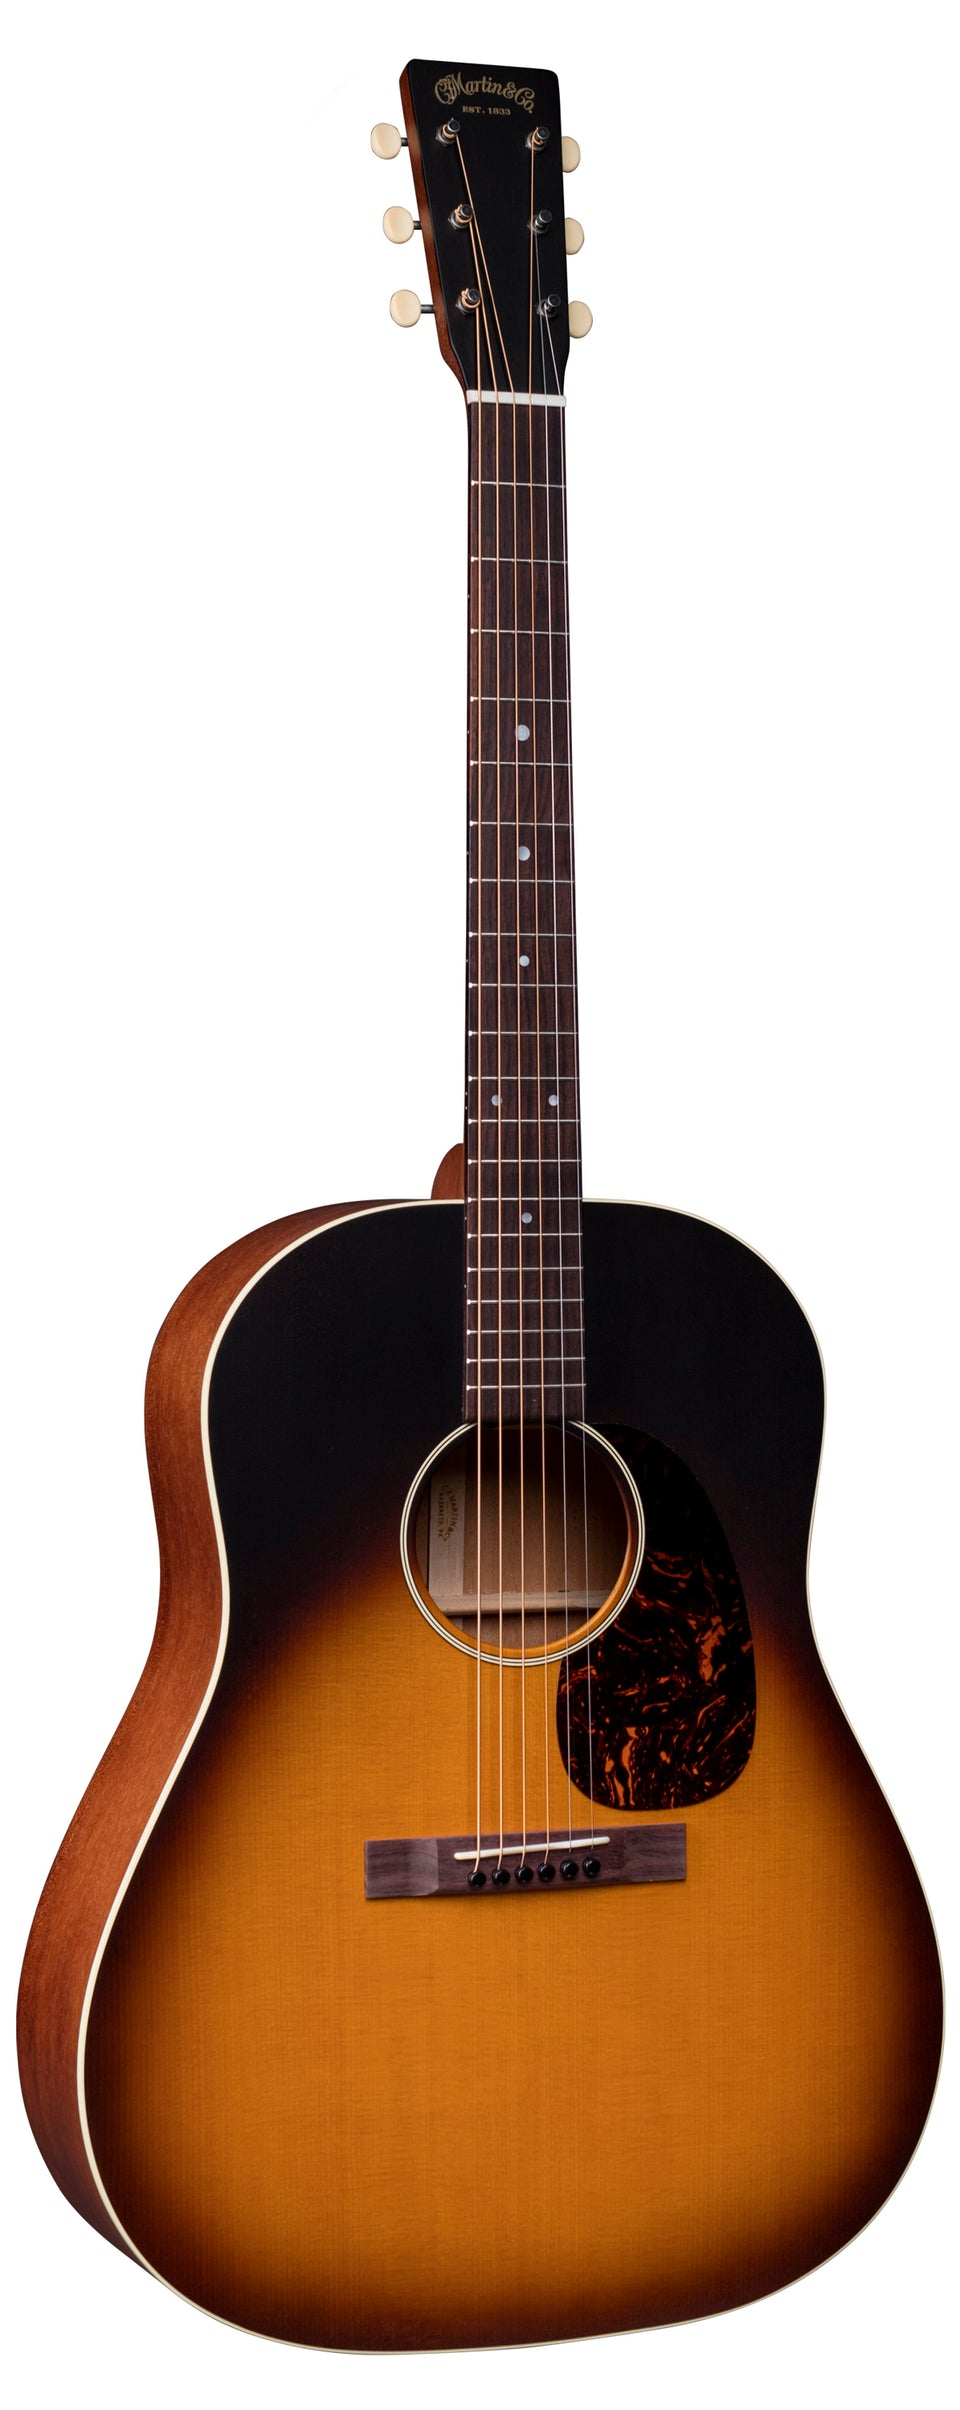 Martin DSS-17 Acoustic Guitar - Whiskey Sunset